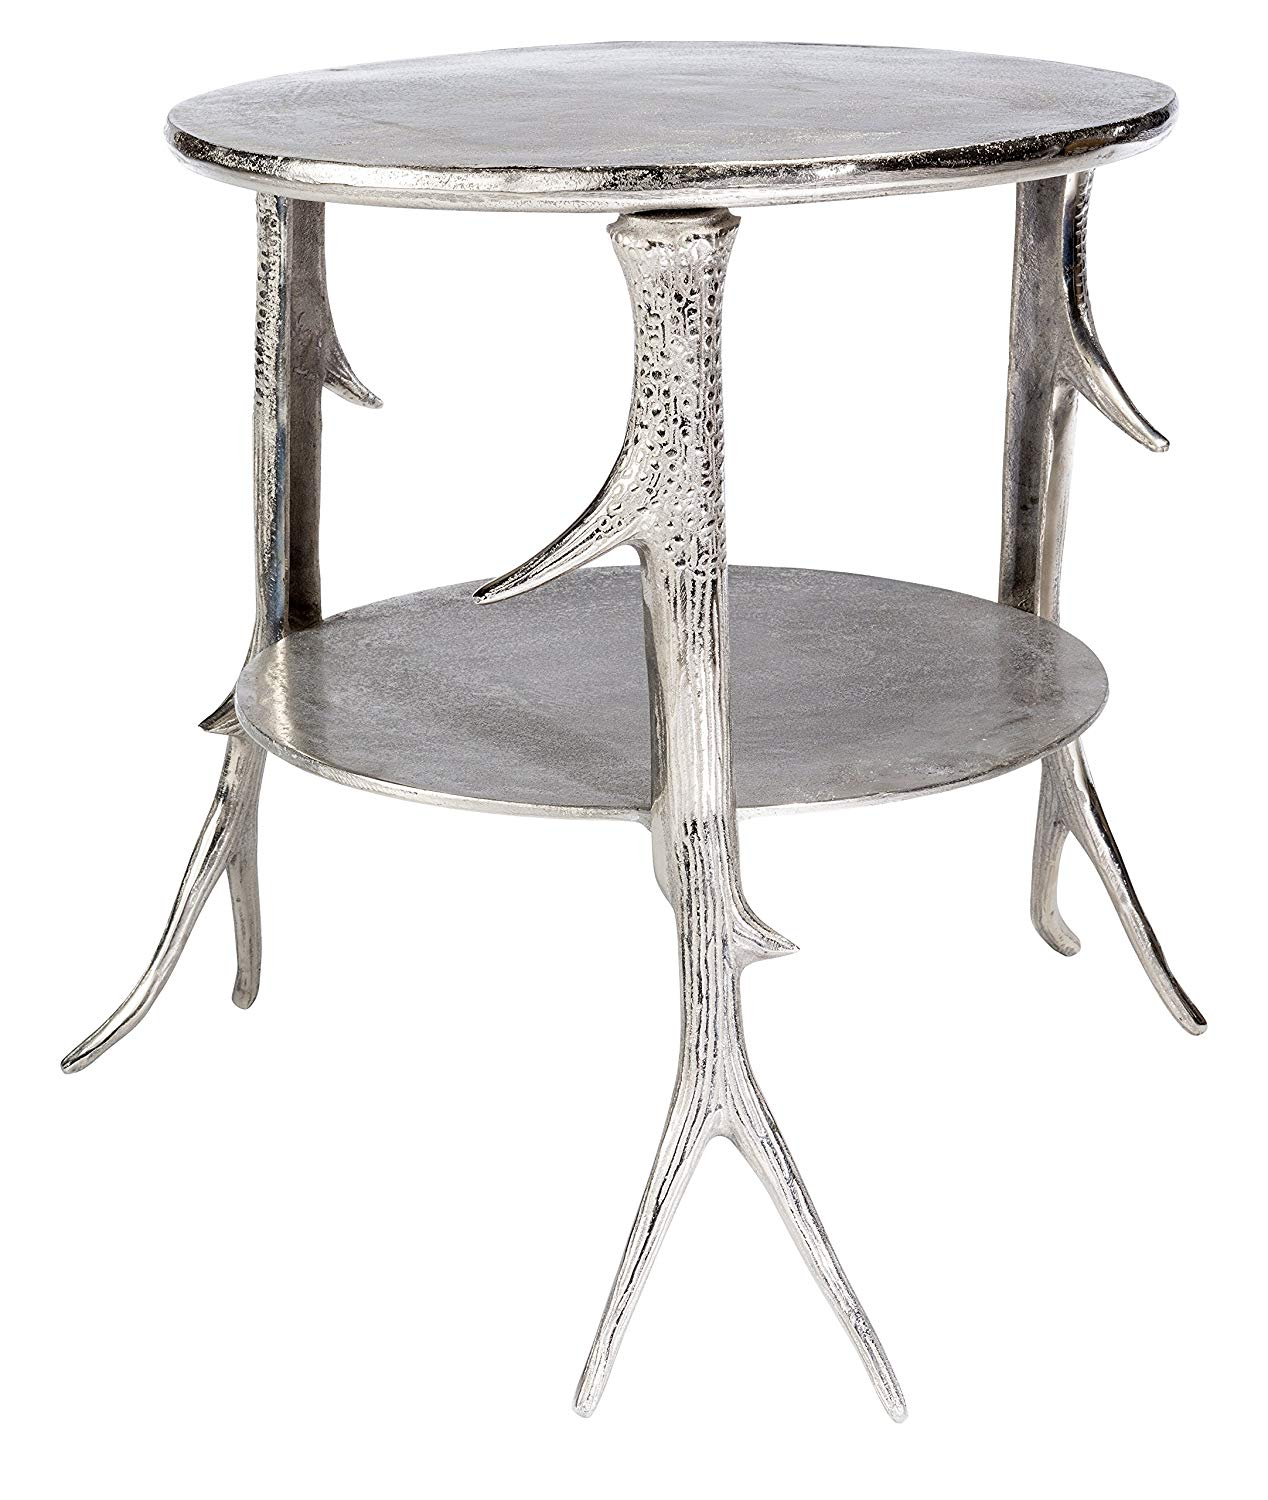 moes home collection sprig accent table with shelf winsome wood cassie glass top cappuccino finish silver kitchen dining narrow small entry half moon occasional inch tablecloth